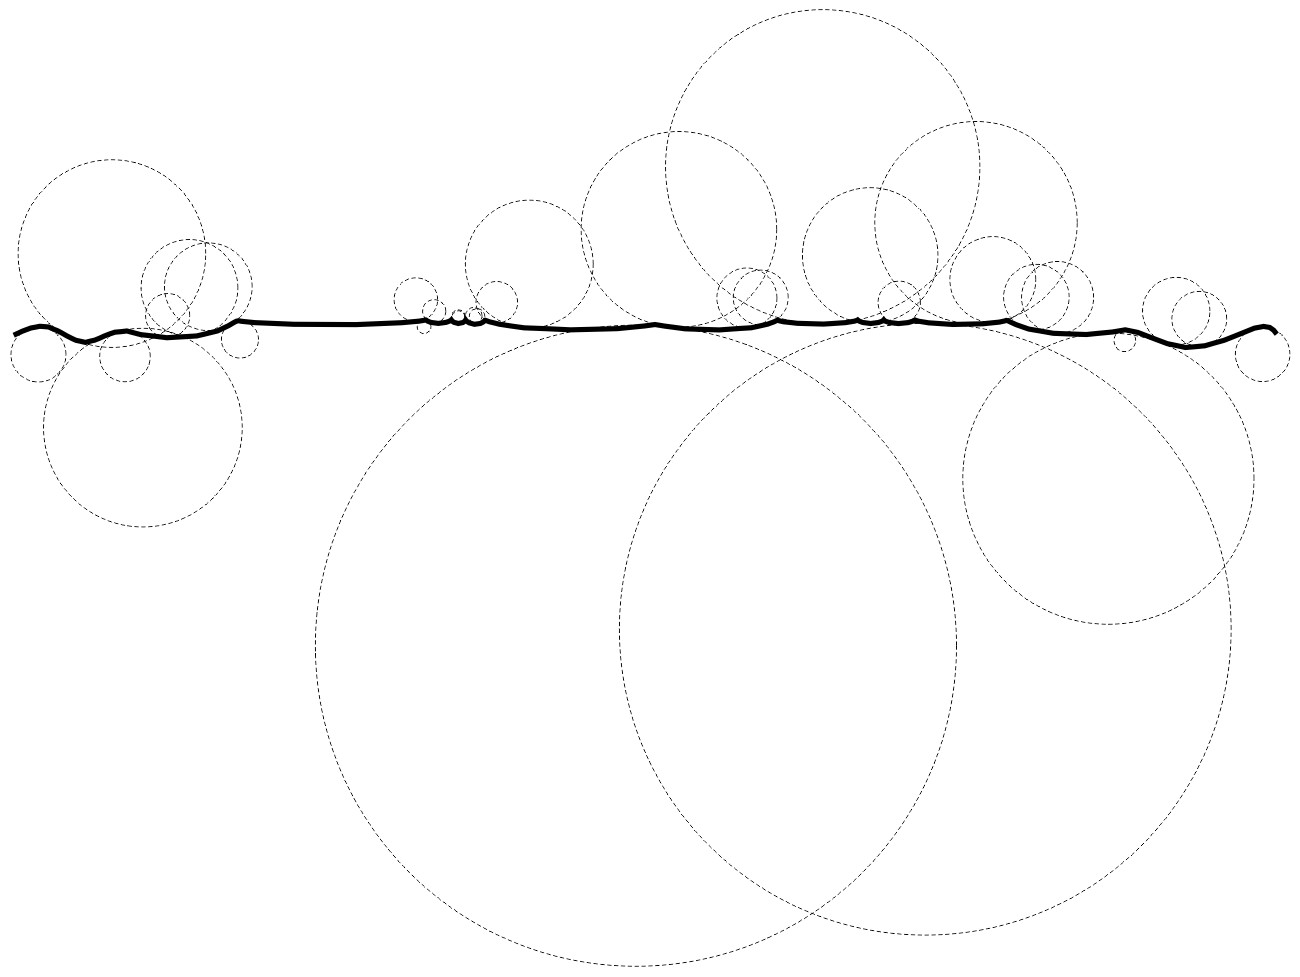 Varying surface curvature resulting in different surface 'tension'